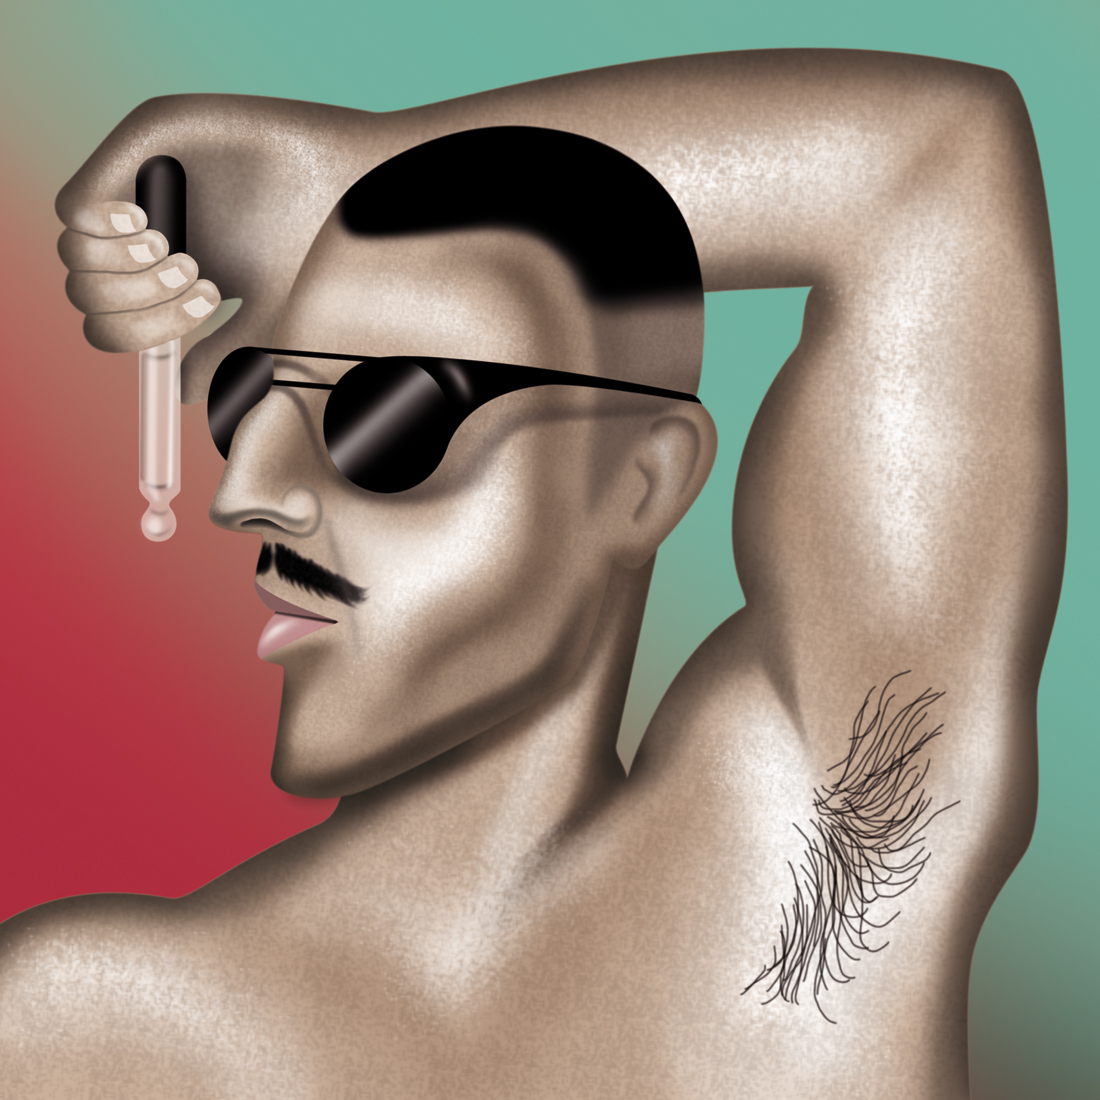 illustration, illustrations, illustrator, illustrators, hand, hands, man, men, sunglasses, body hair, muscles, muscle, gradient, highlight, sunglasses, mustache, facial hair, erotic